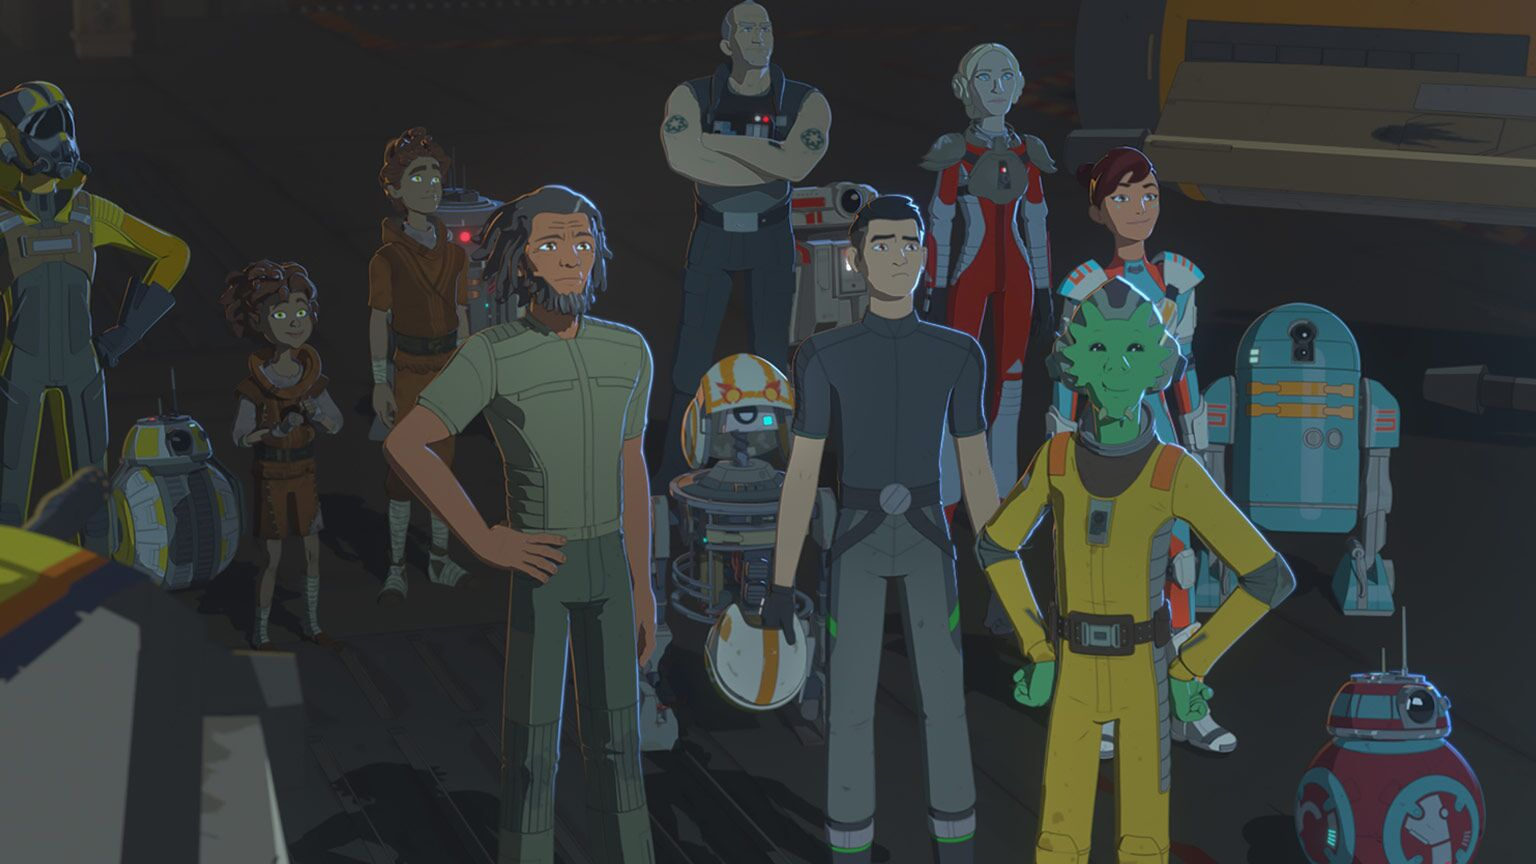 Kylo Ren makes an appearance in the Star Wars Resistance finale